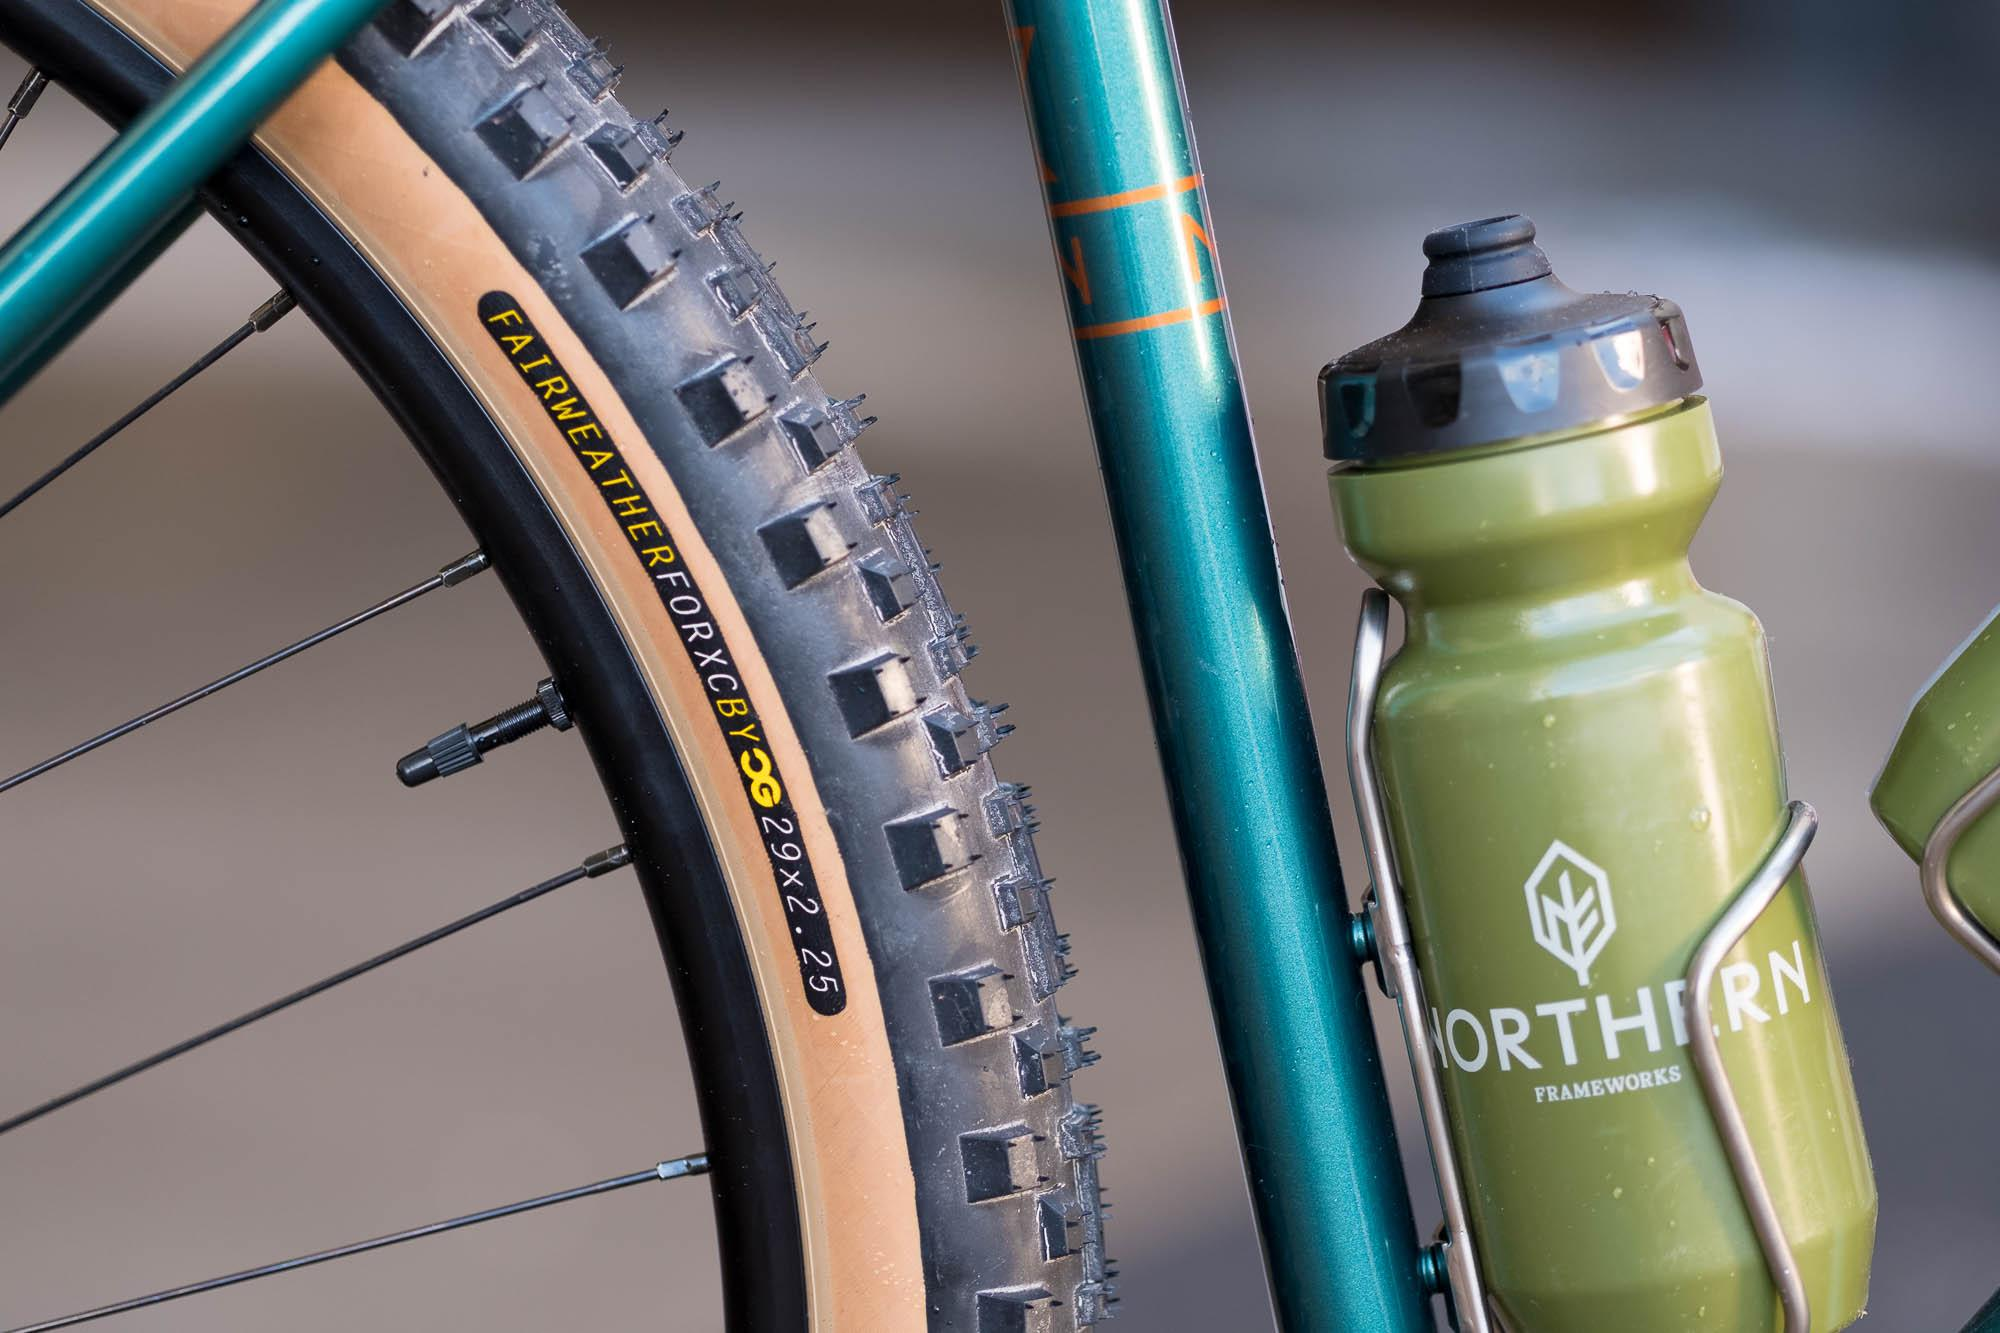 Josh's Tour Divide Northern Frameworks